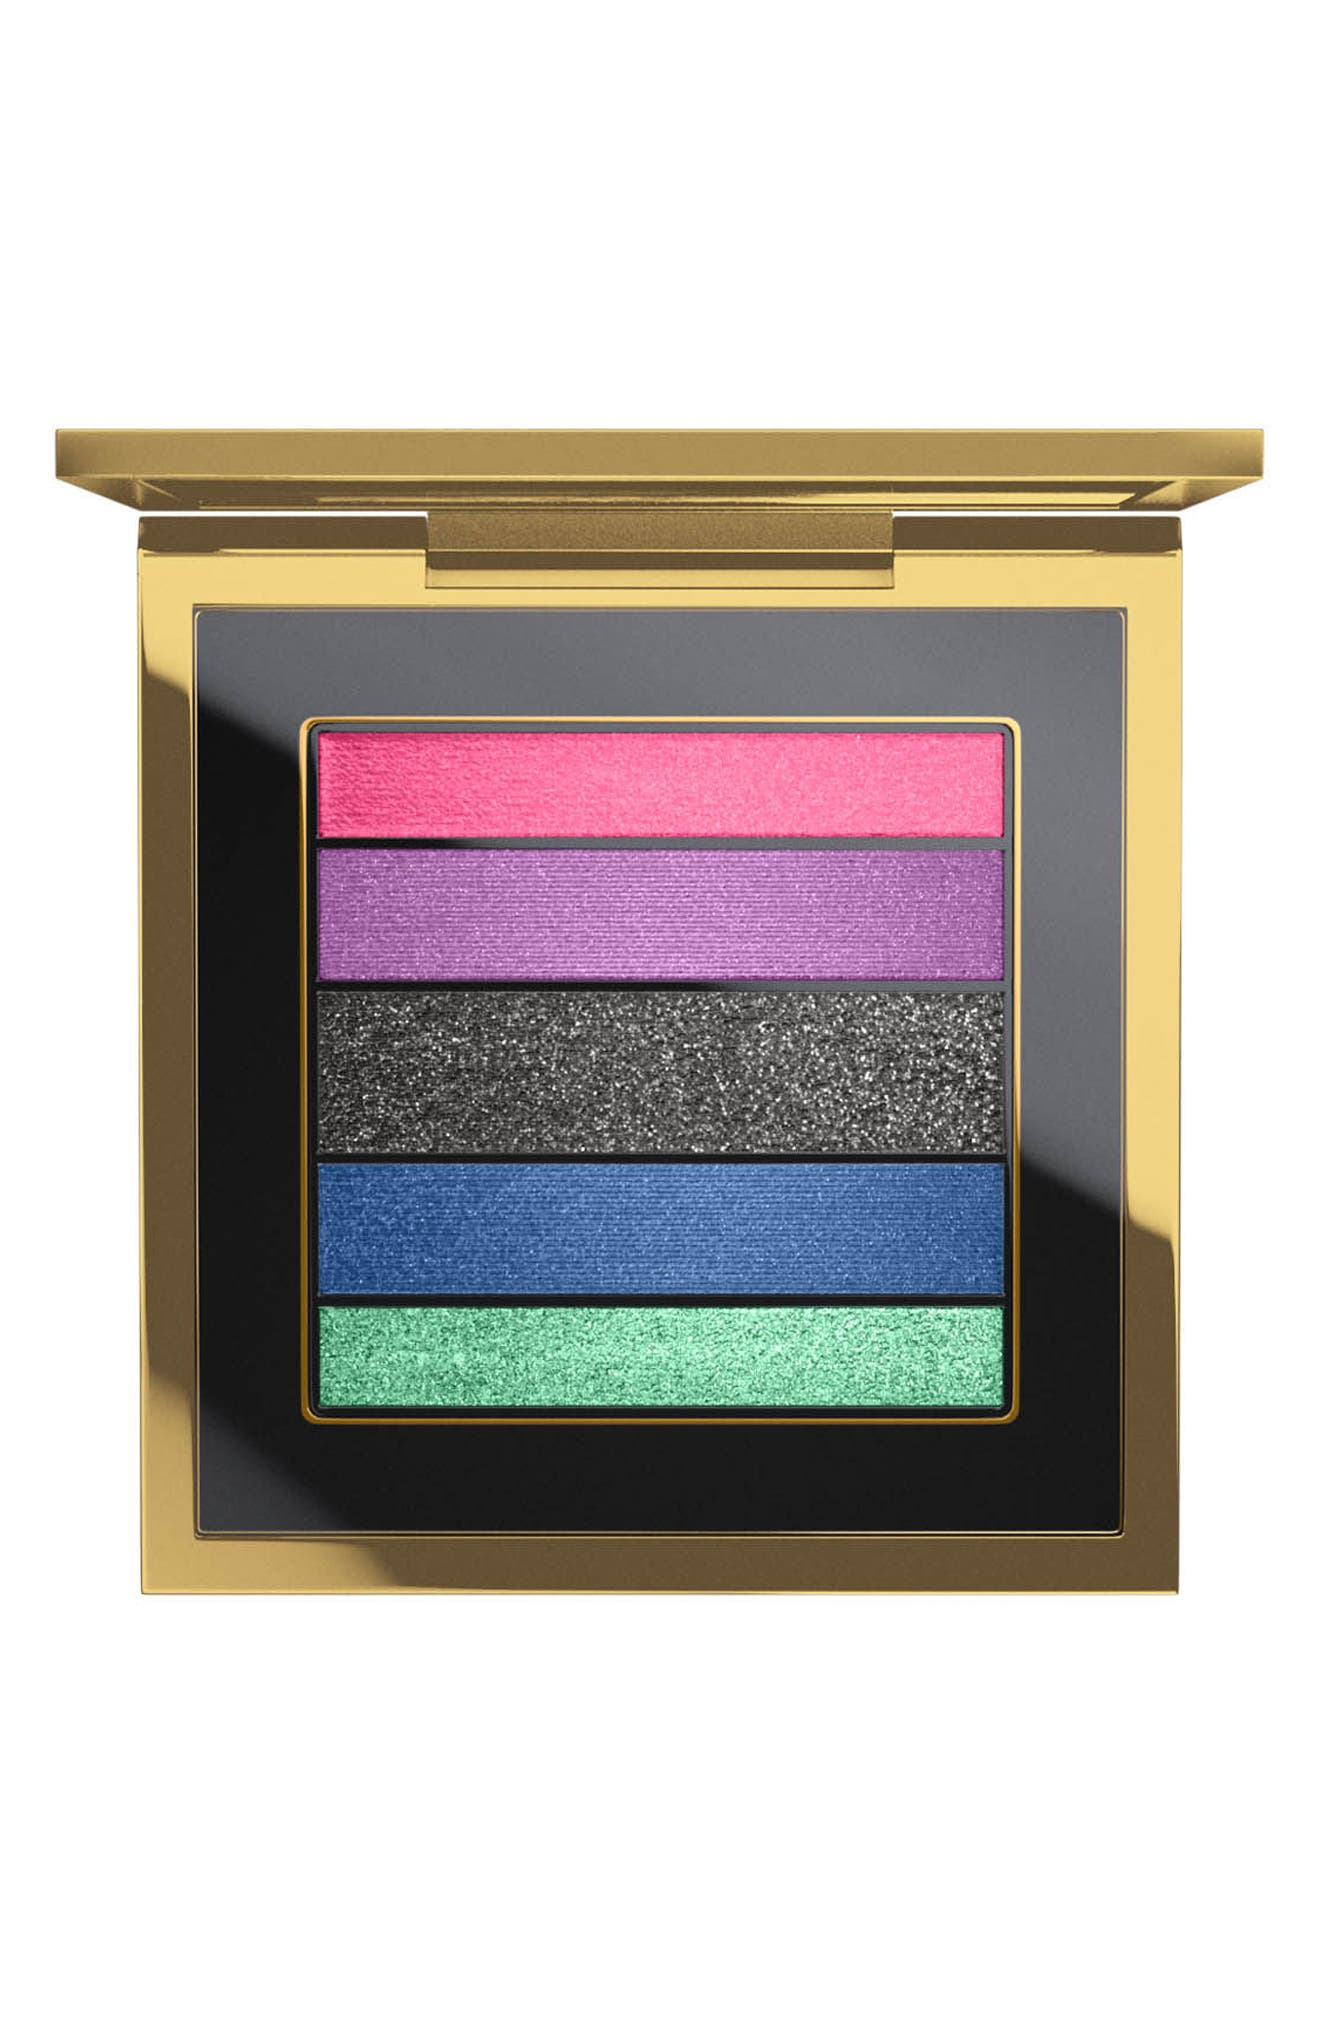 MAC Rossy de Palma Veluxe Pearlfusion Eyeshadow Palette,                             Main thumbnail 1, color,                             960